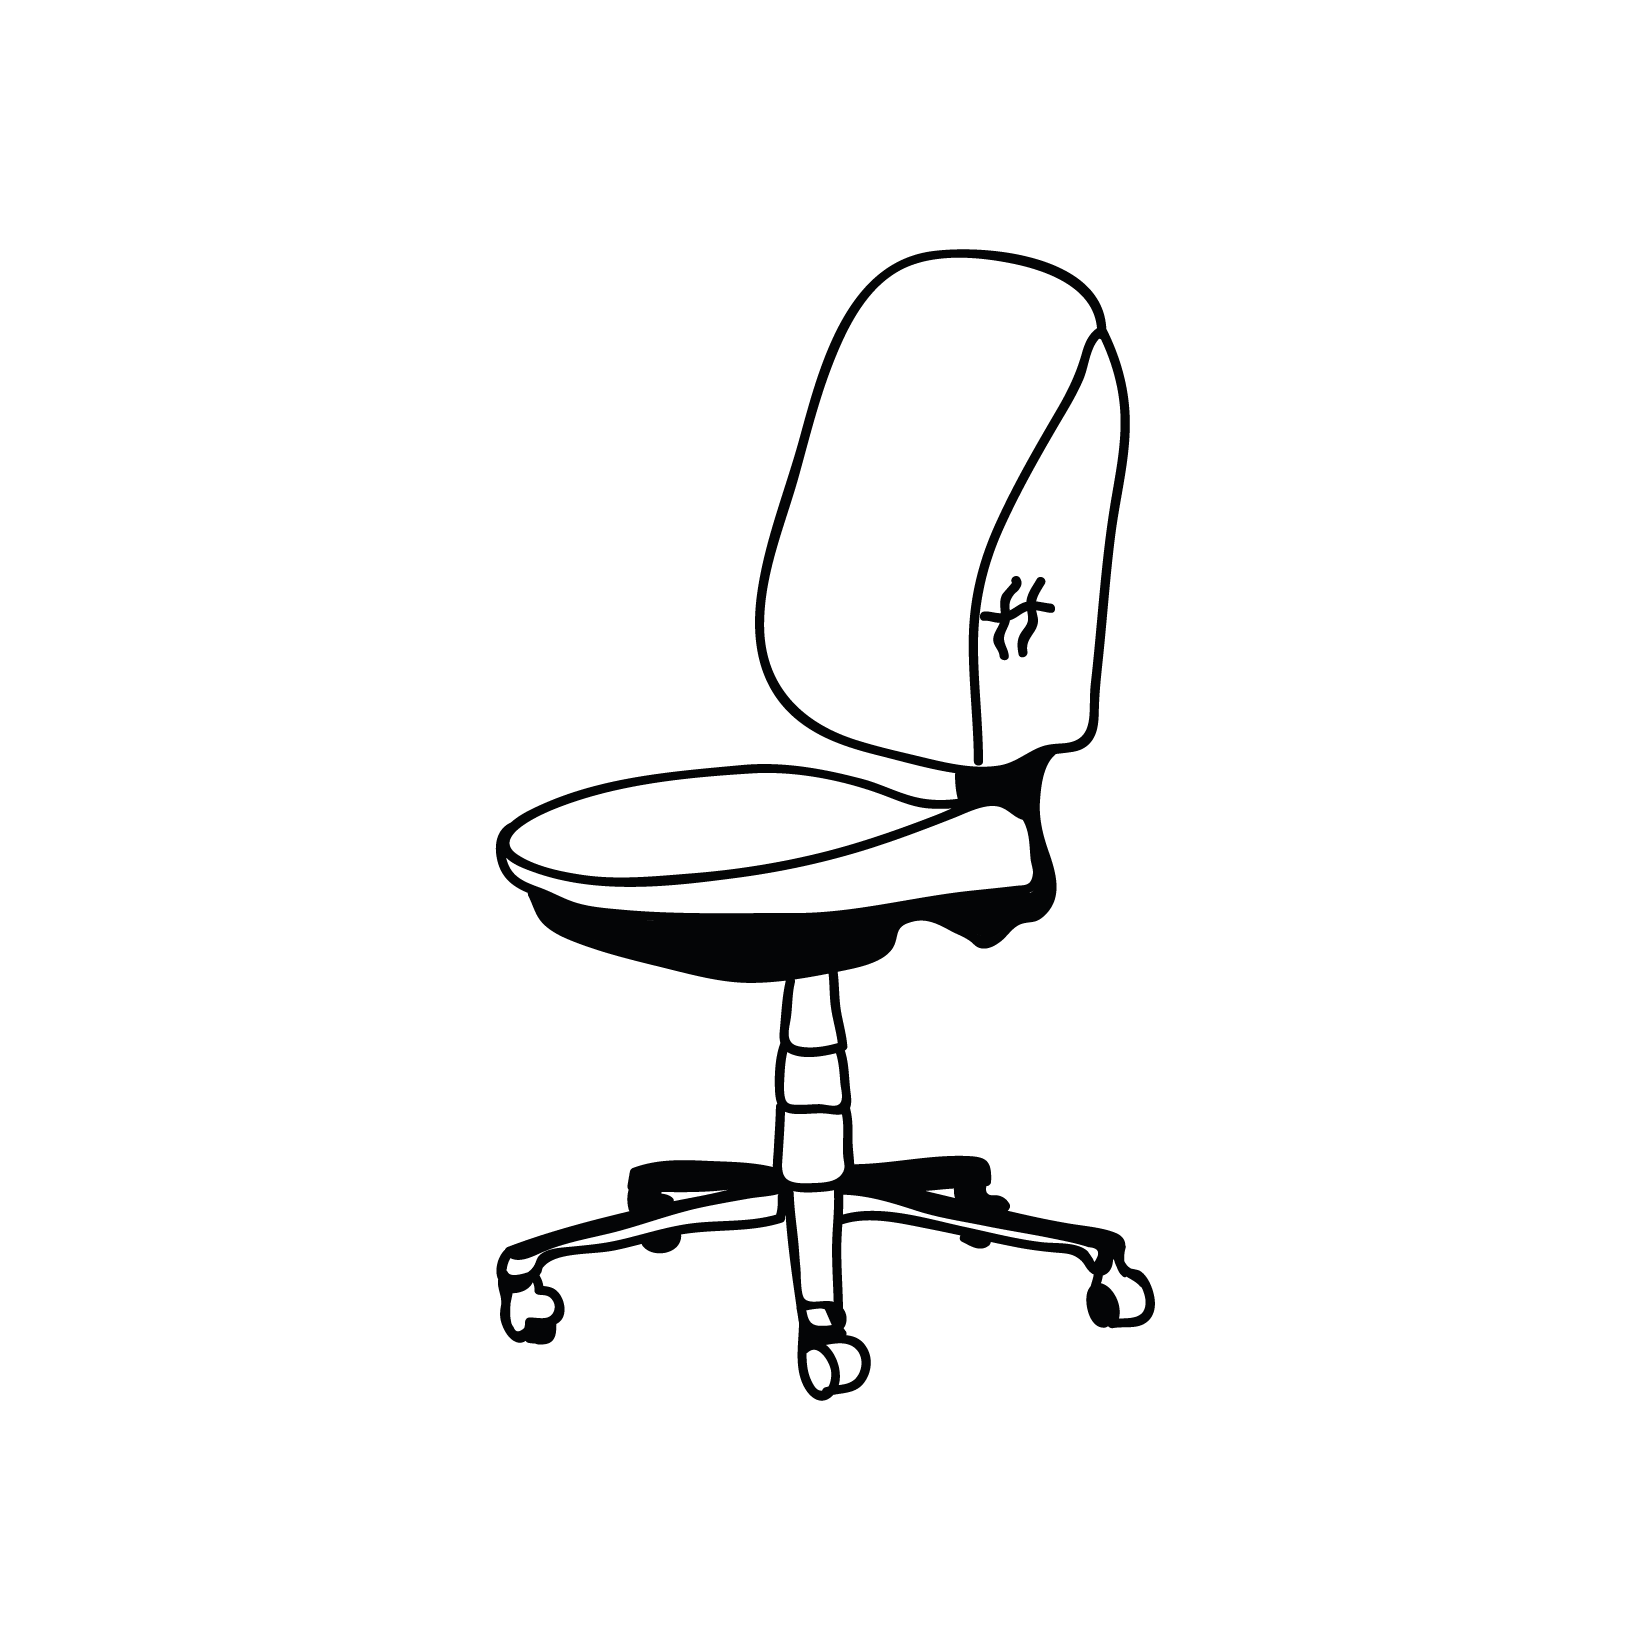 2017 - We got our first swivel chairs and a VERY small office to put them in and what was just simple workshops turned into full scale events peppered with these unusual interactive moments